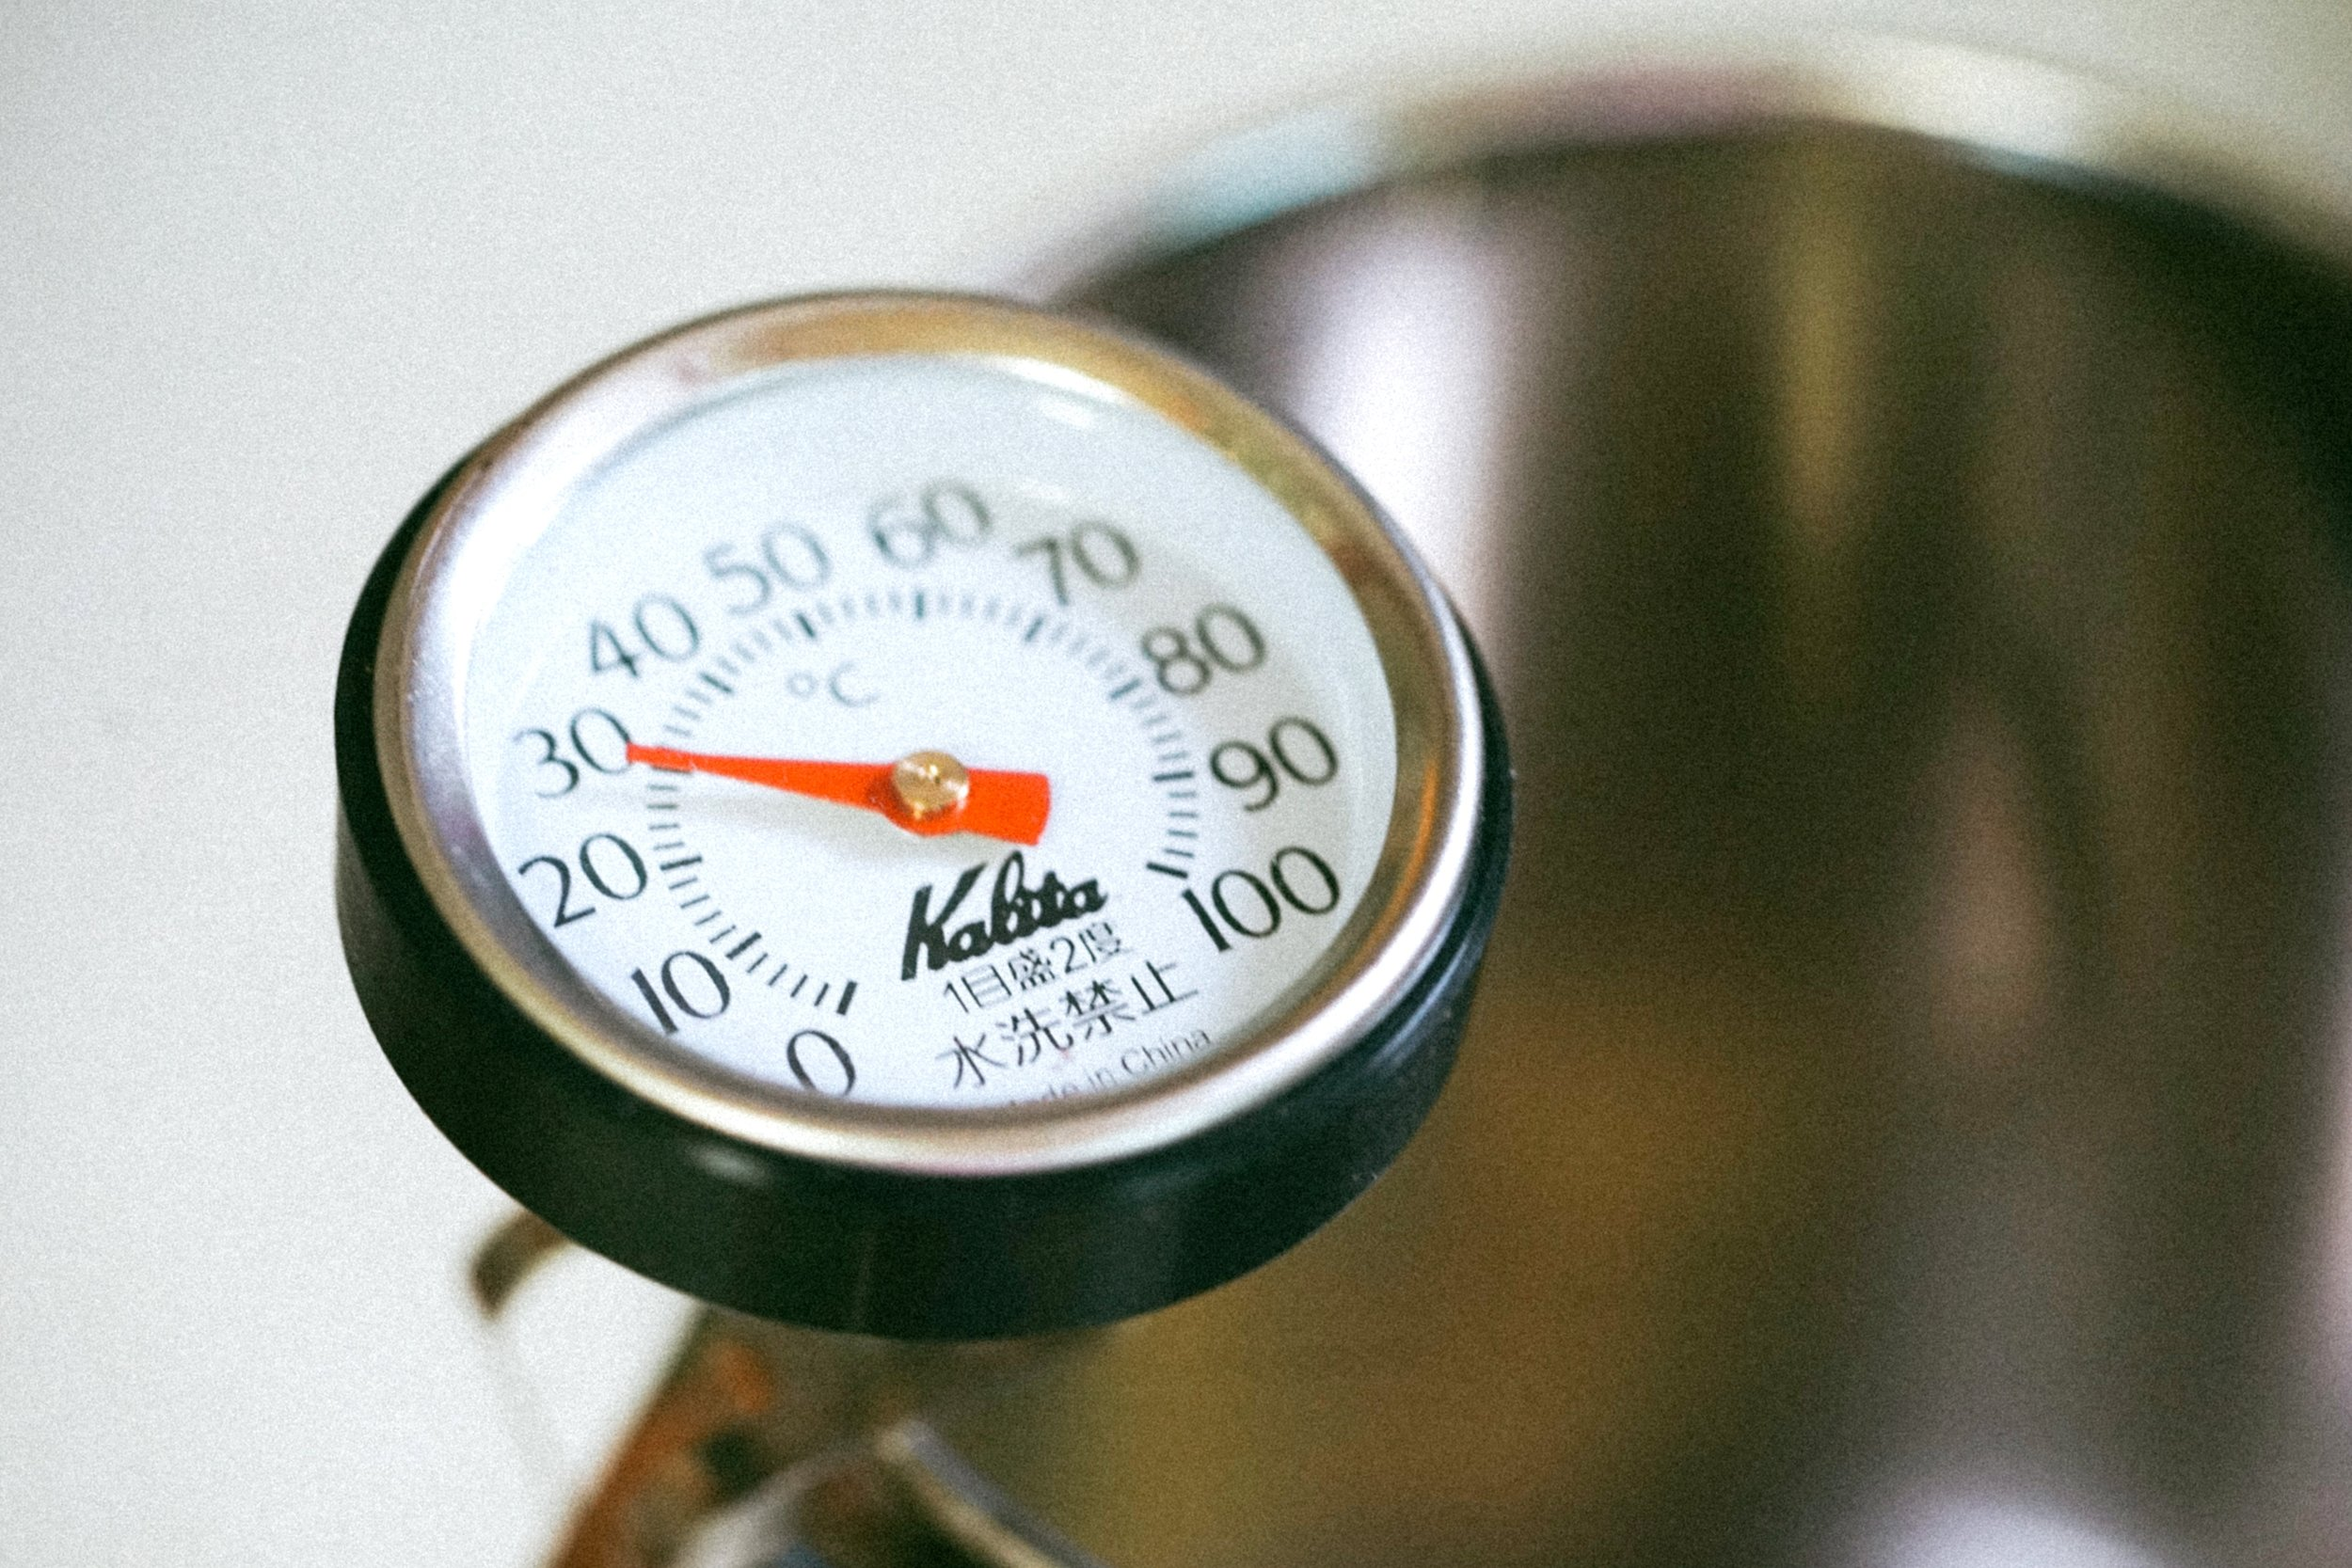 So what is the right temperature for my starter? -